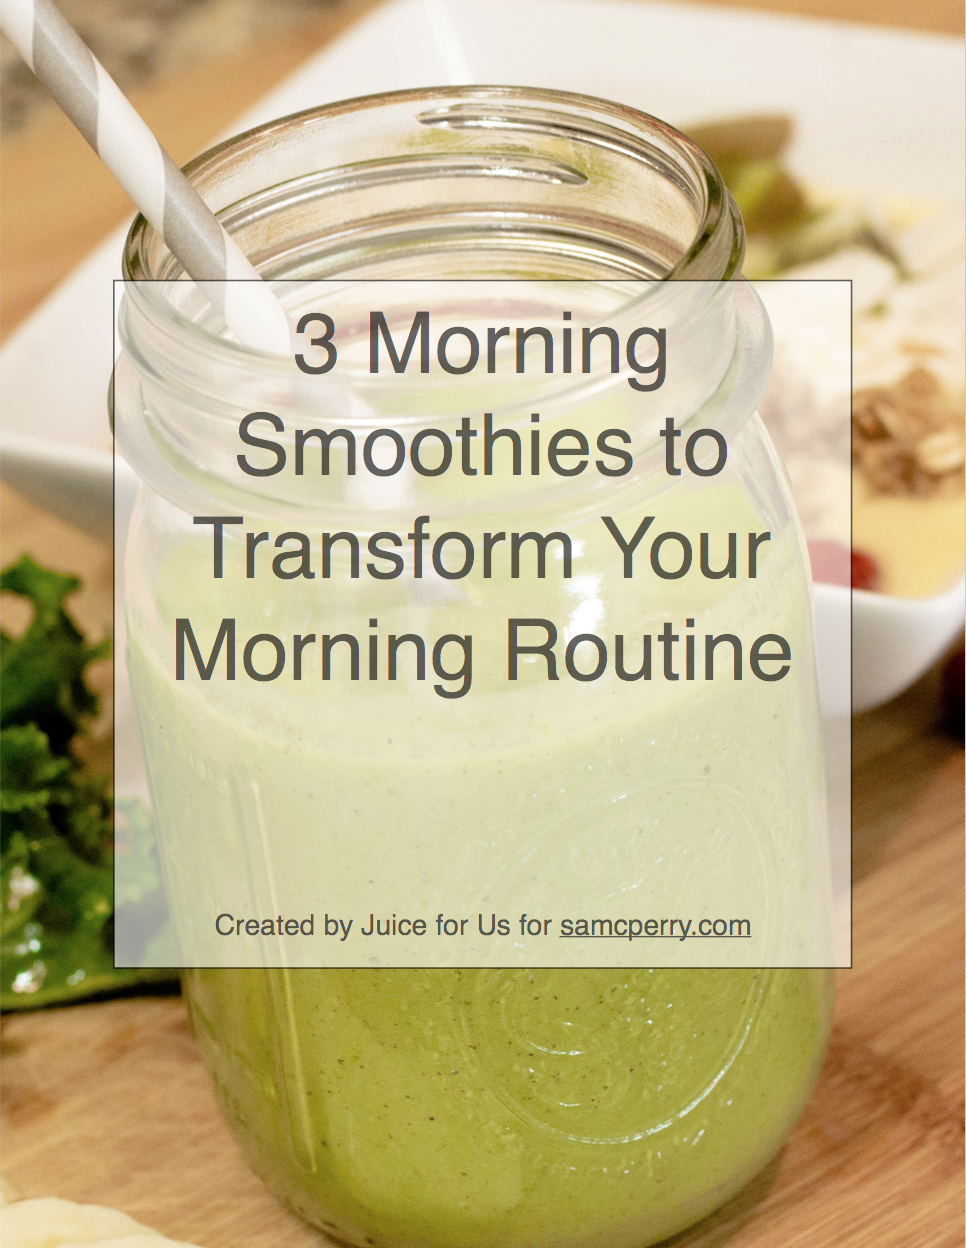 3-morning-smoothies-to-transform-your-morning-routine-download.jpg